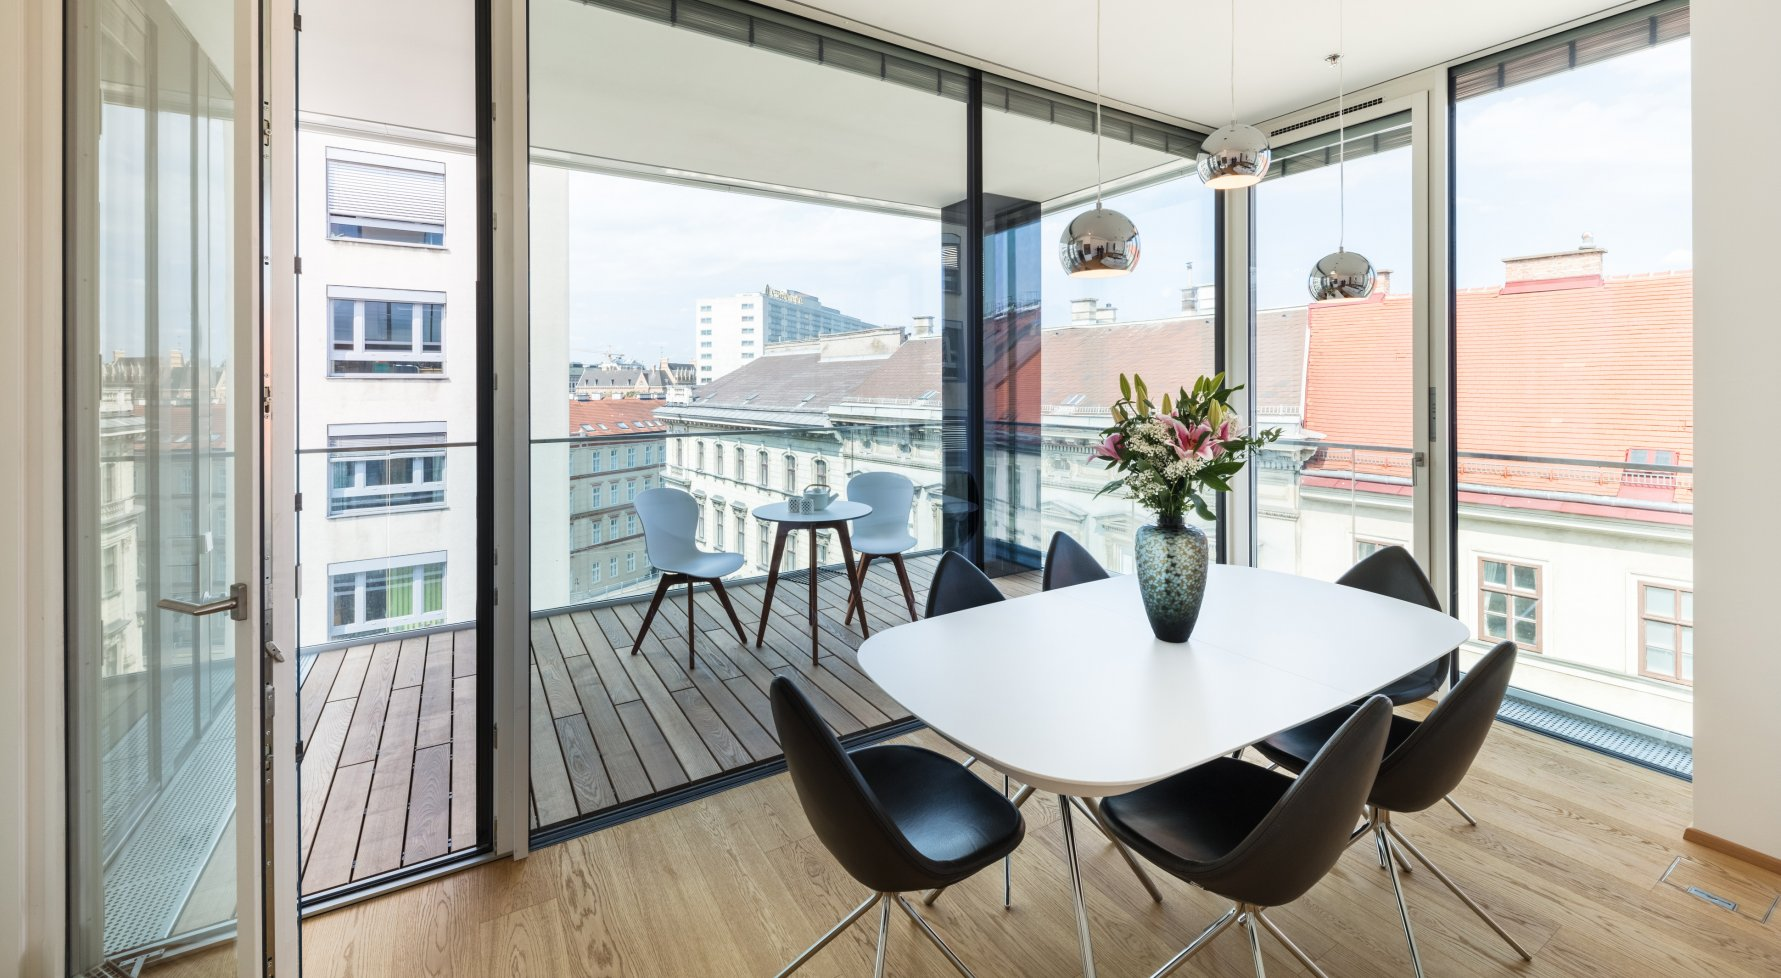 Property in 1030 Wien, 3. Bezirk: TOP LOCATION WITH TOP VIEW OF THE CITY IN THE DIPLOMATIC DISTRICT - picture 1